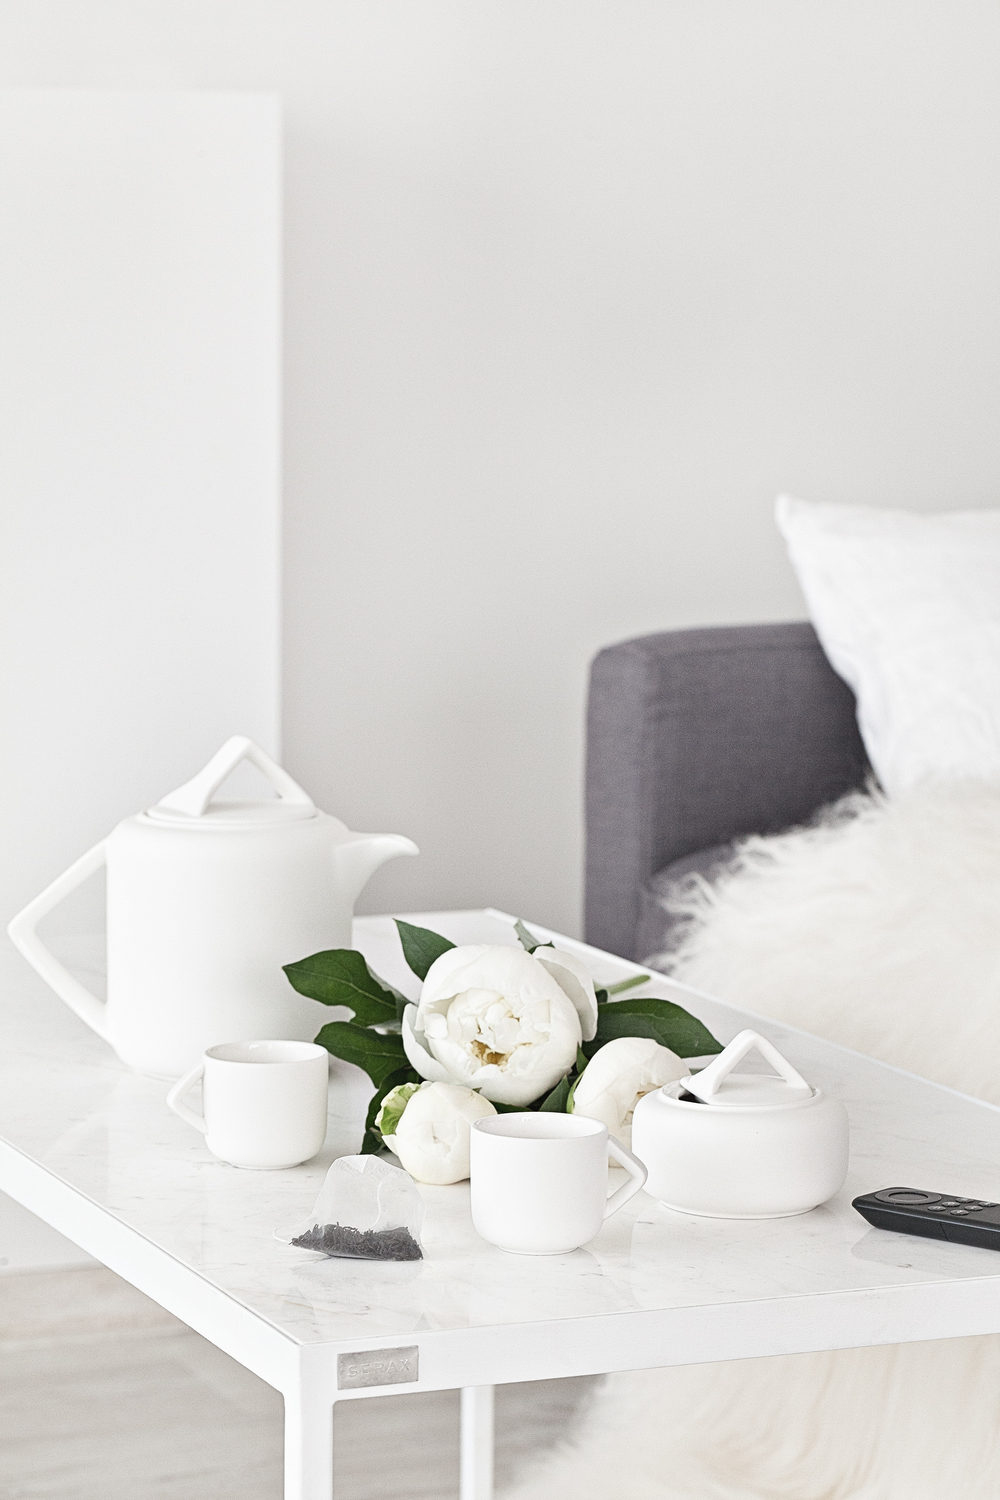 White Marble Table & White Ceramic Tea/Coffee Set from Serax Belgium.